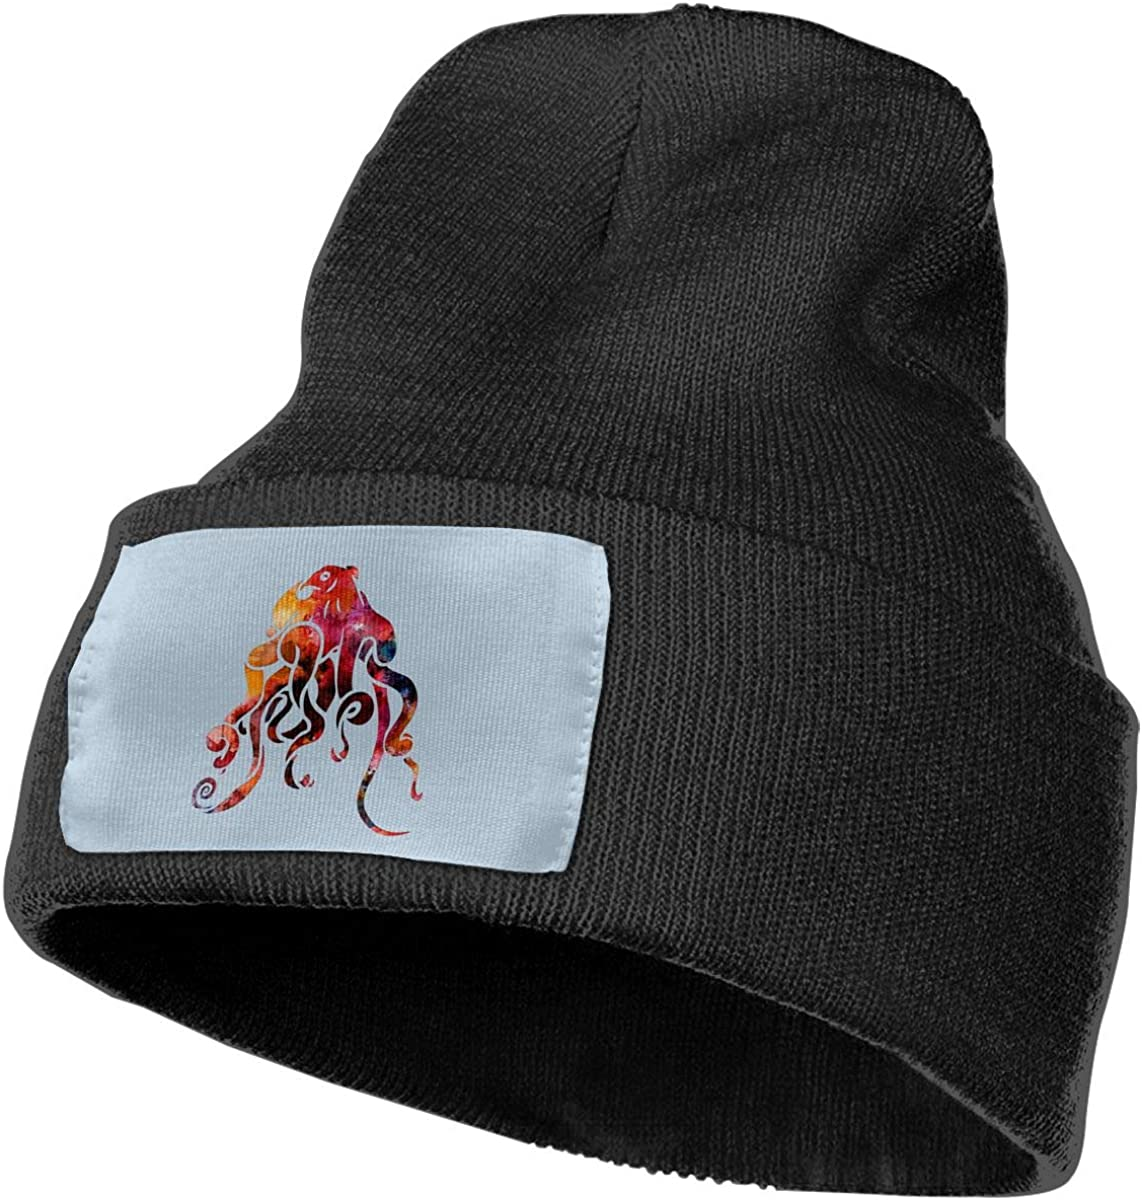 PCaag7v Octopus Colorful Beanie Hat Winter Solid Warm Knit Unisex Ski Skull Cap